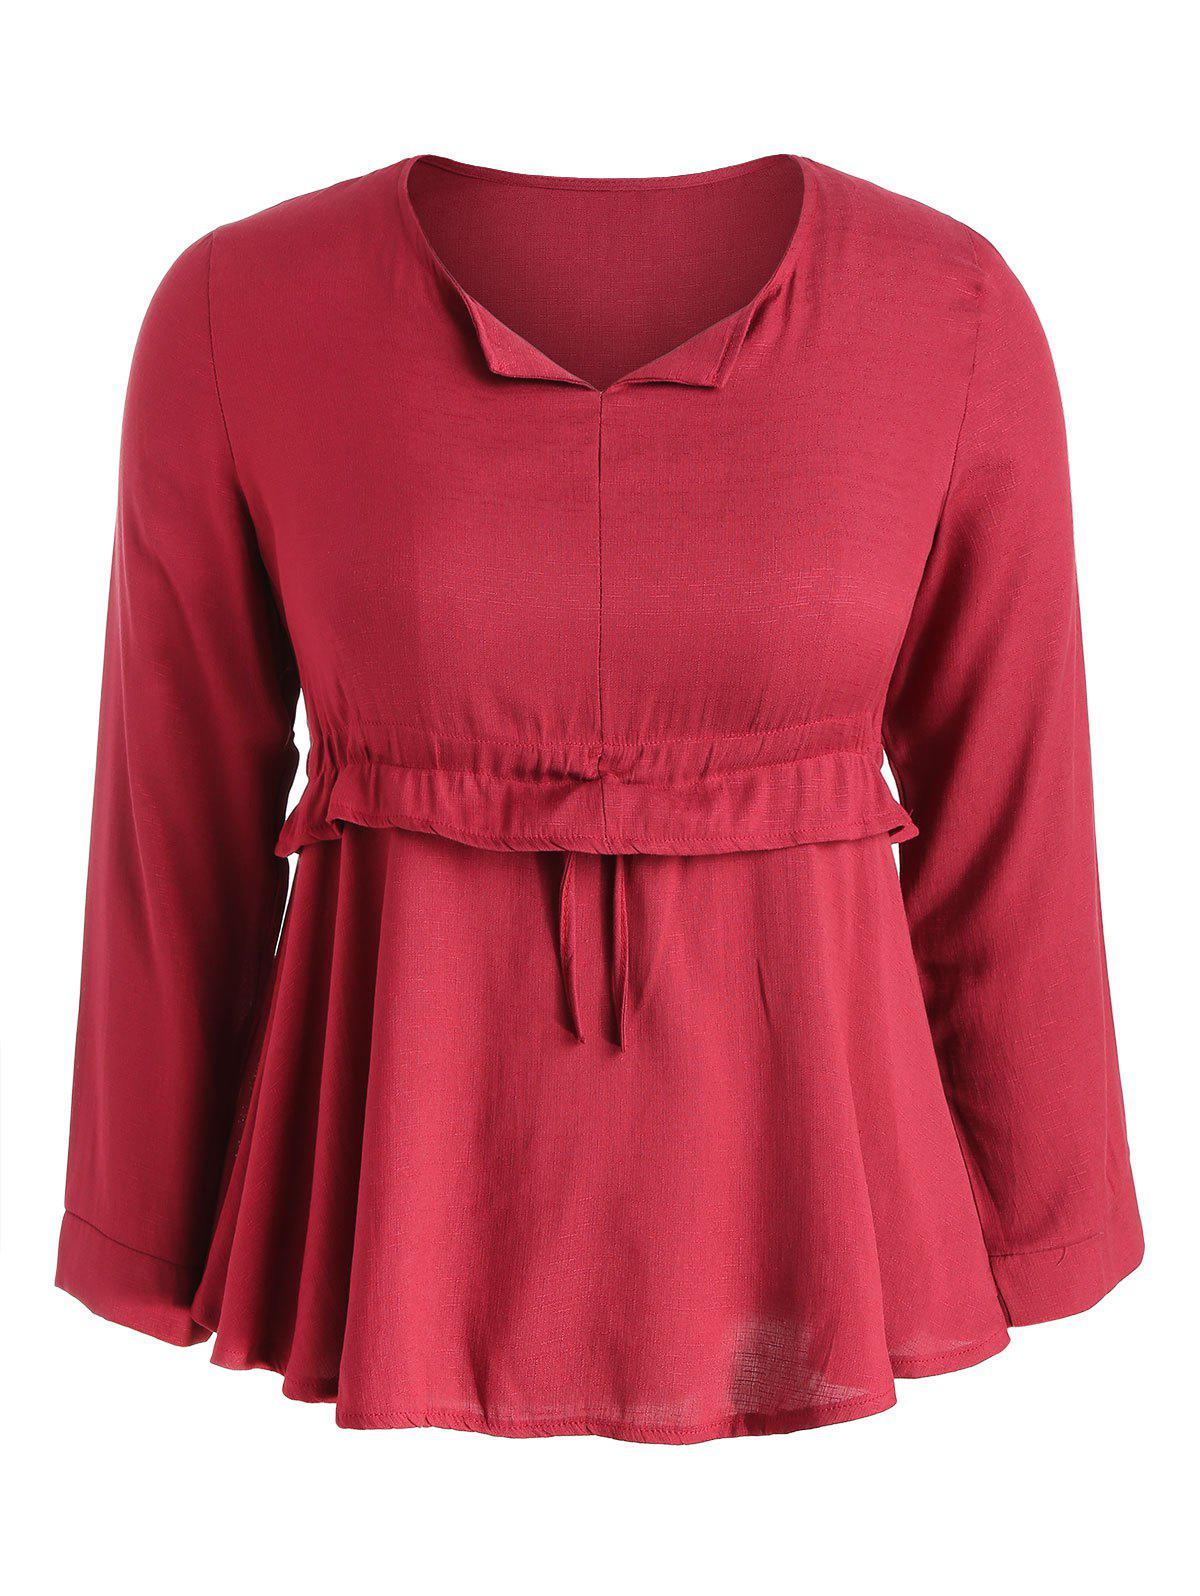 New Long Sleeve Plus Size Drawstring Waist Blouse